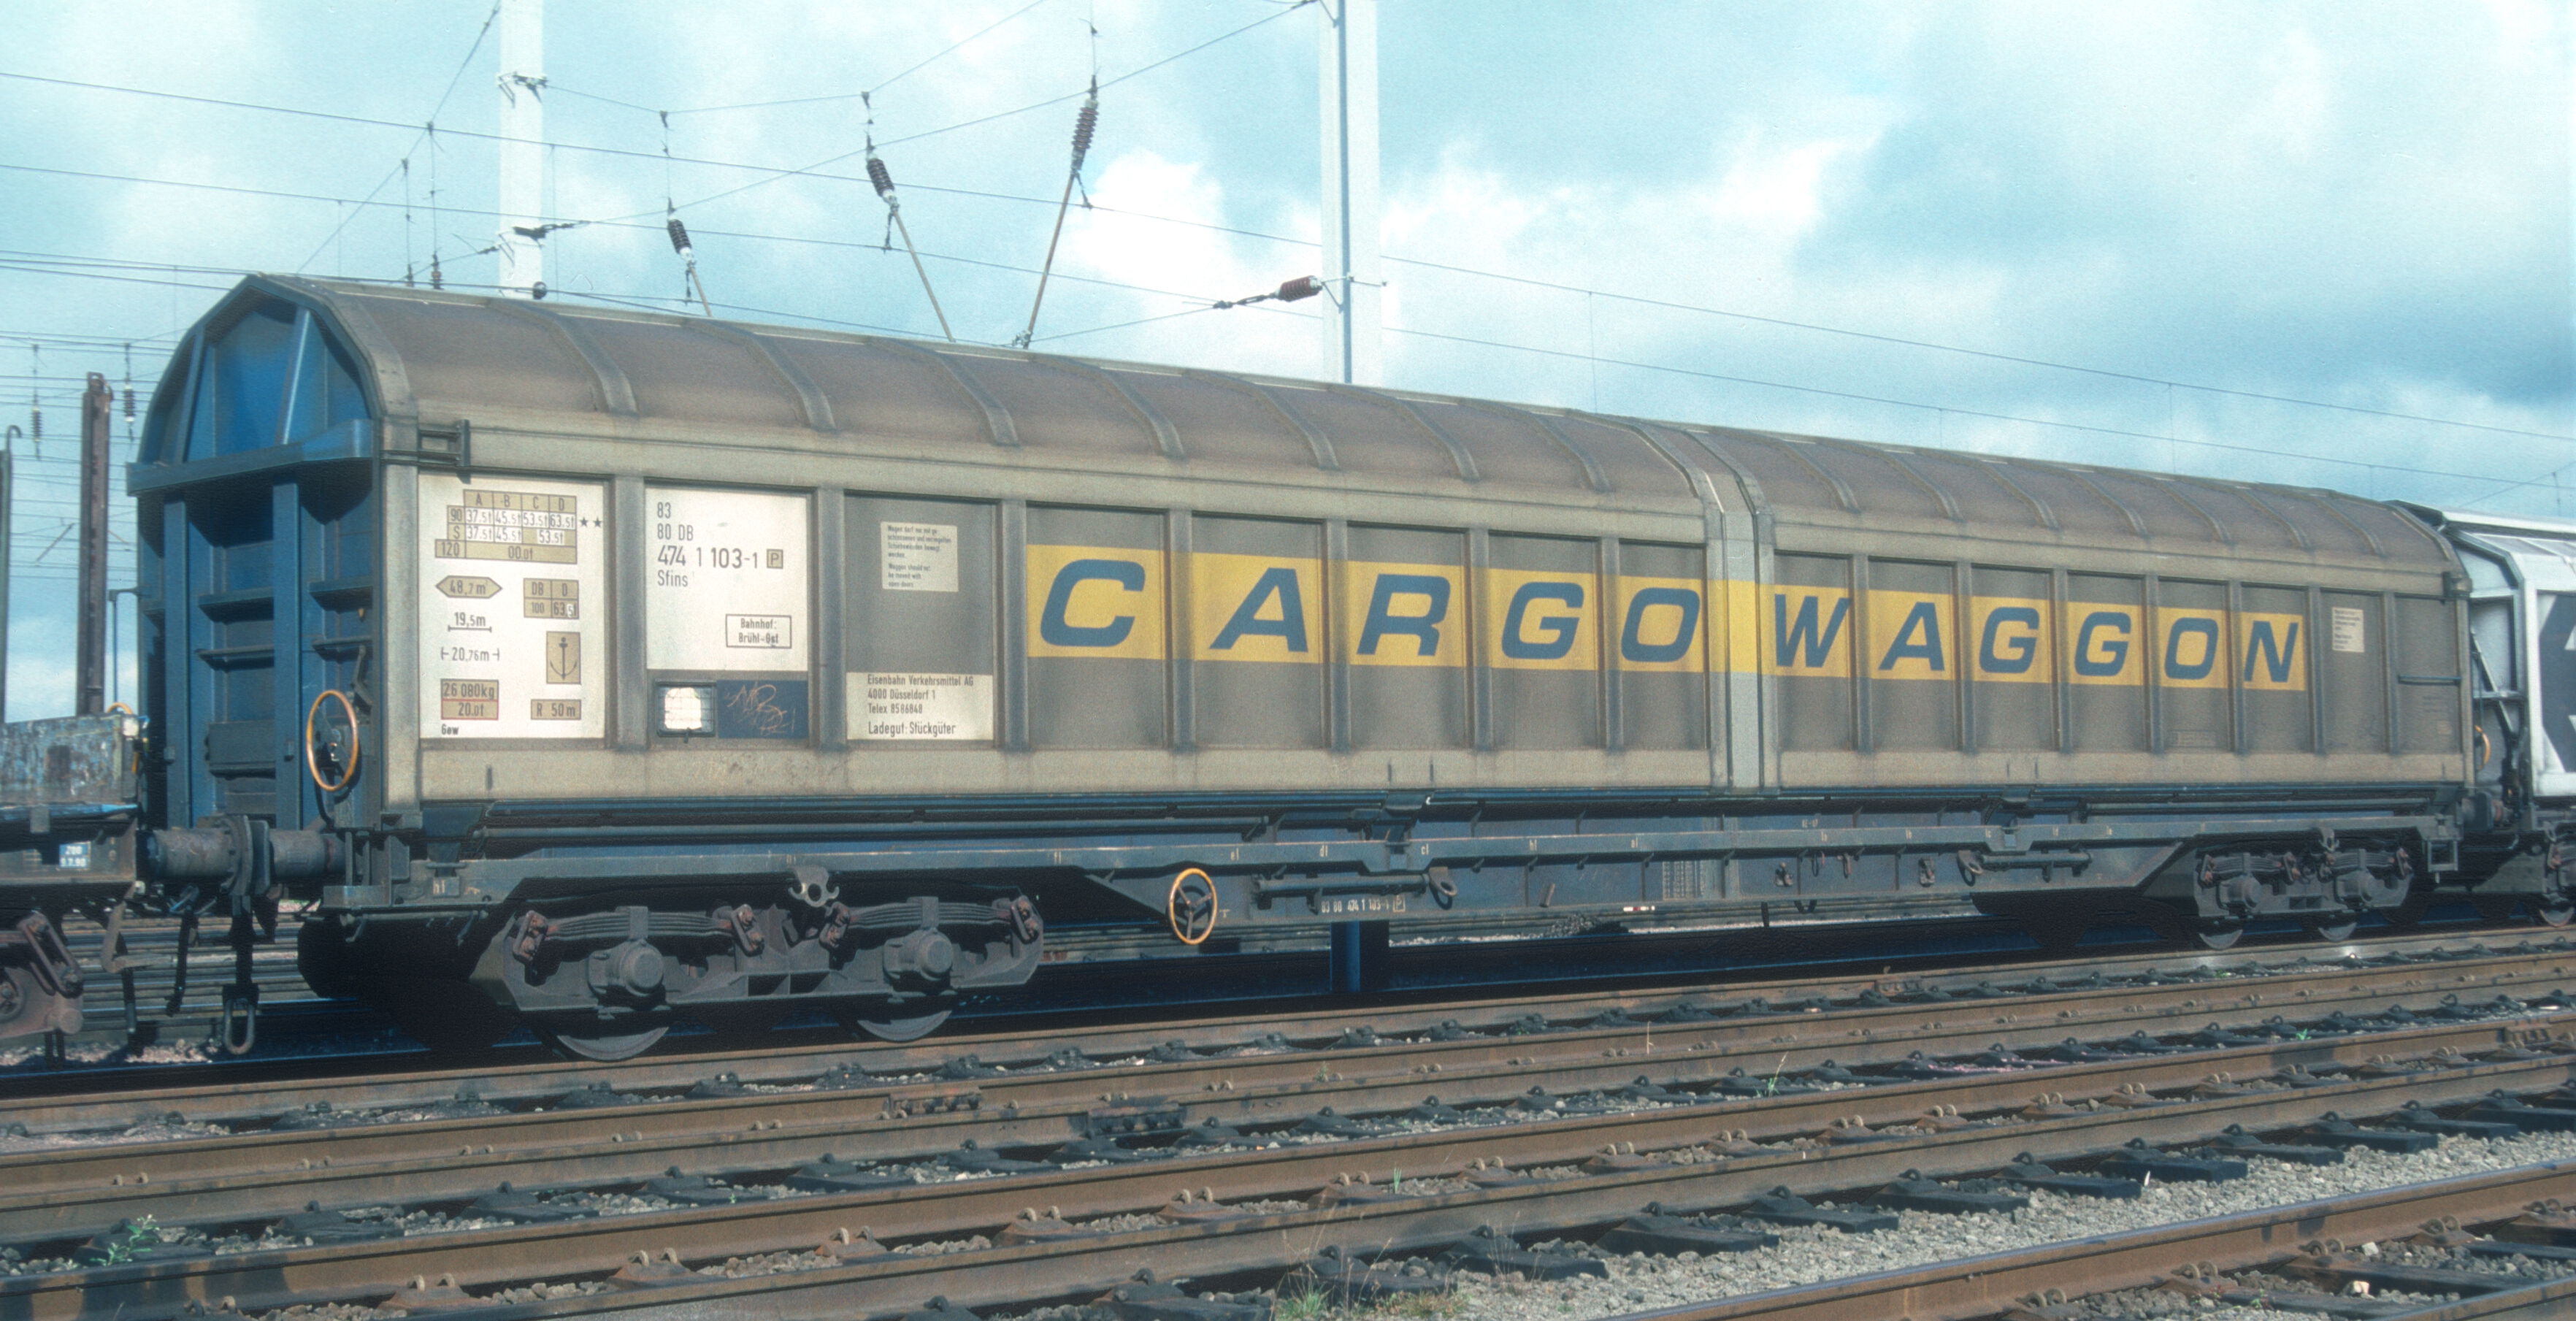 83-80-474-1-103-1-Cargowaggon-Holdall-Di